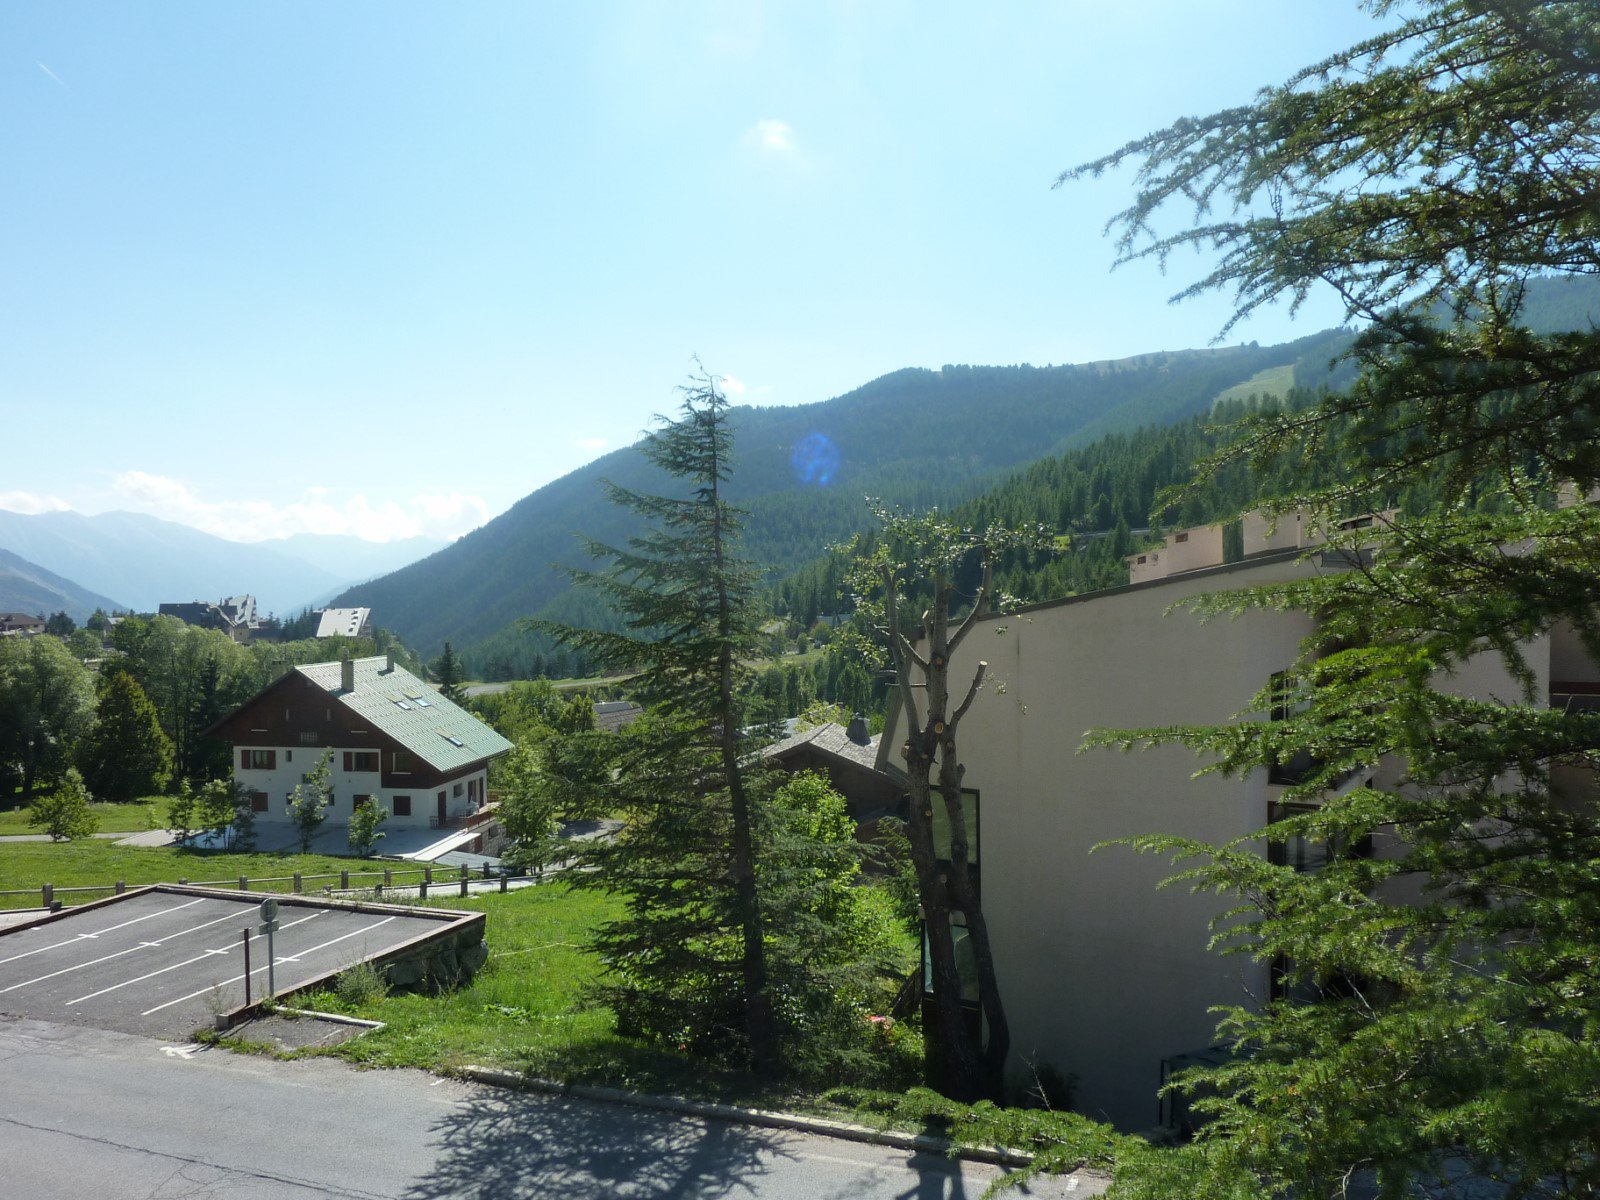 Sale Apartment villa - Auron